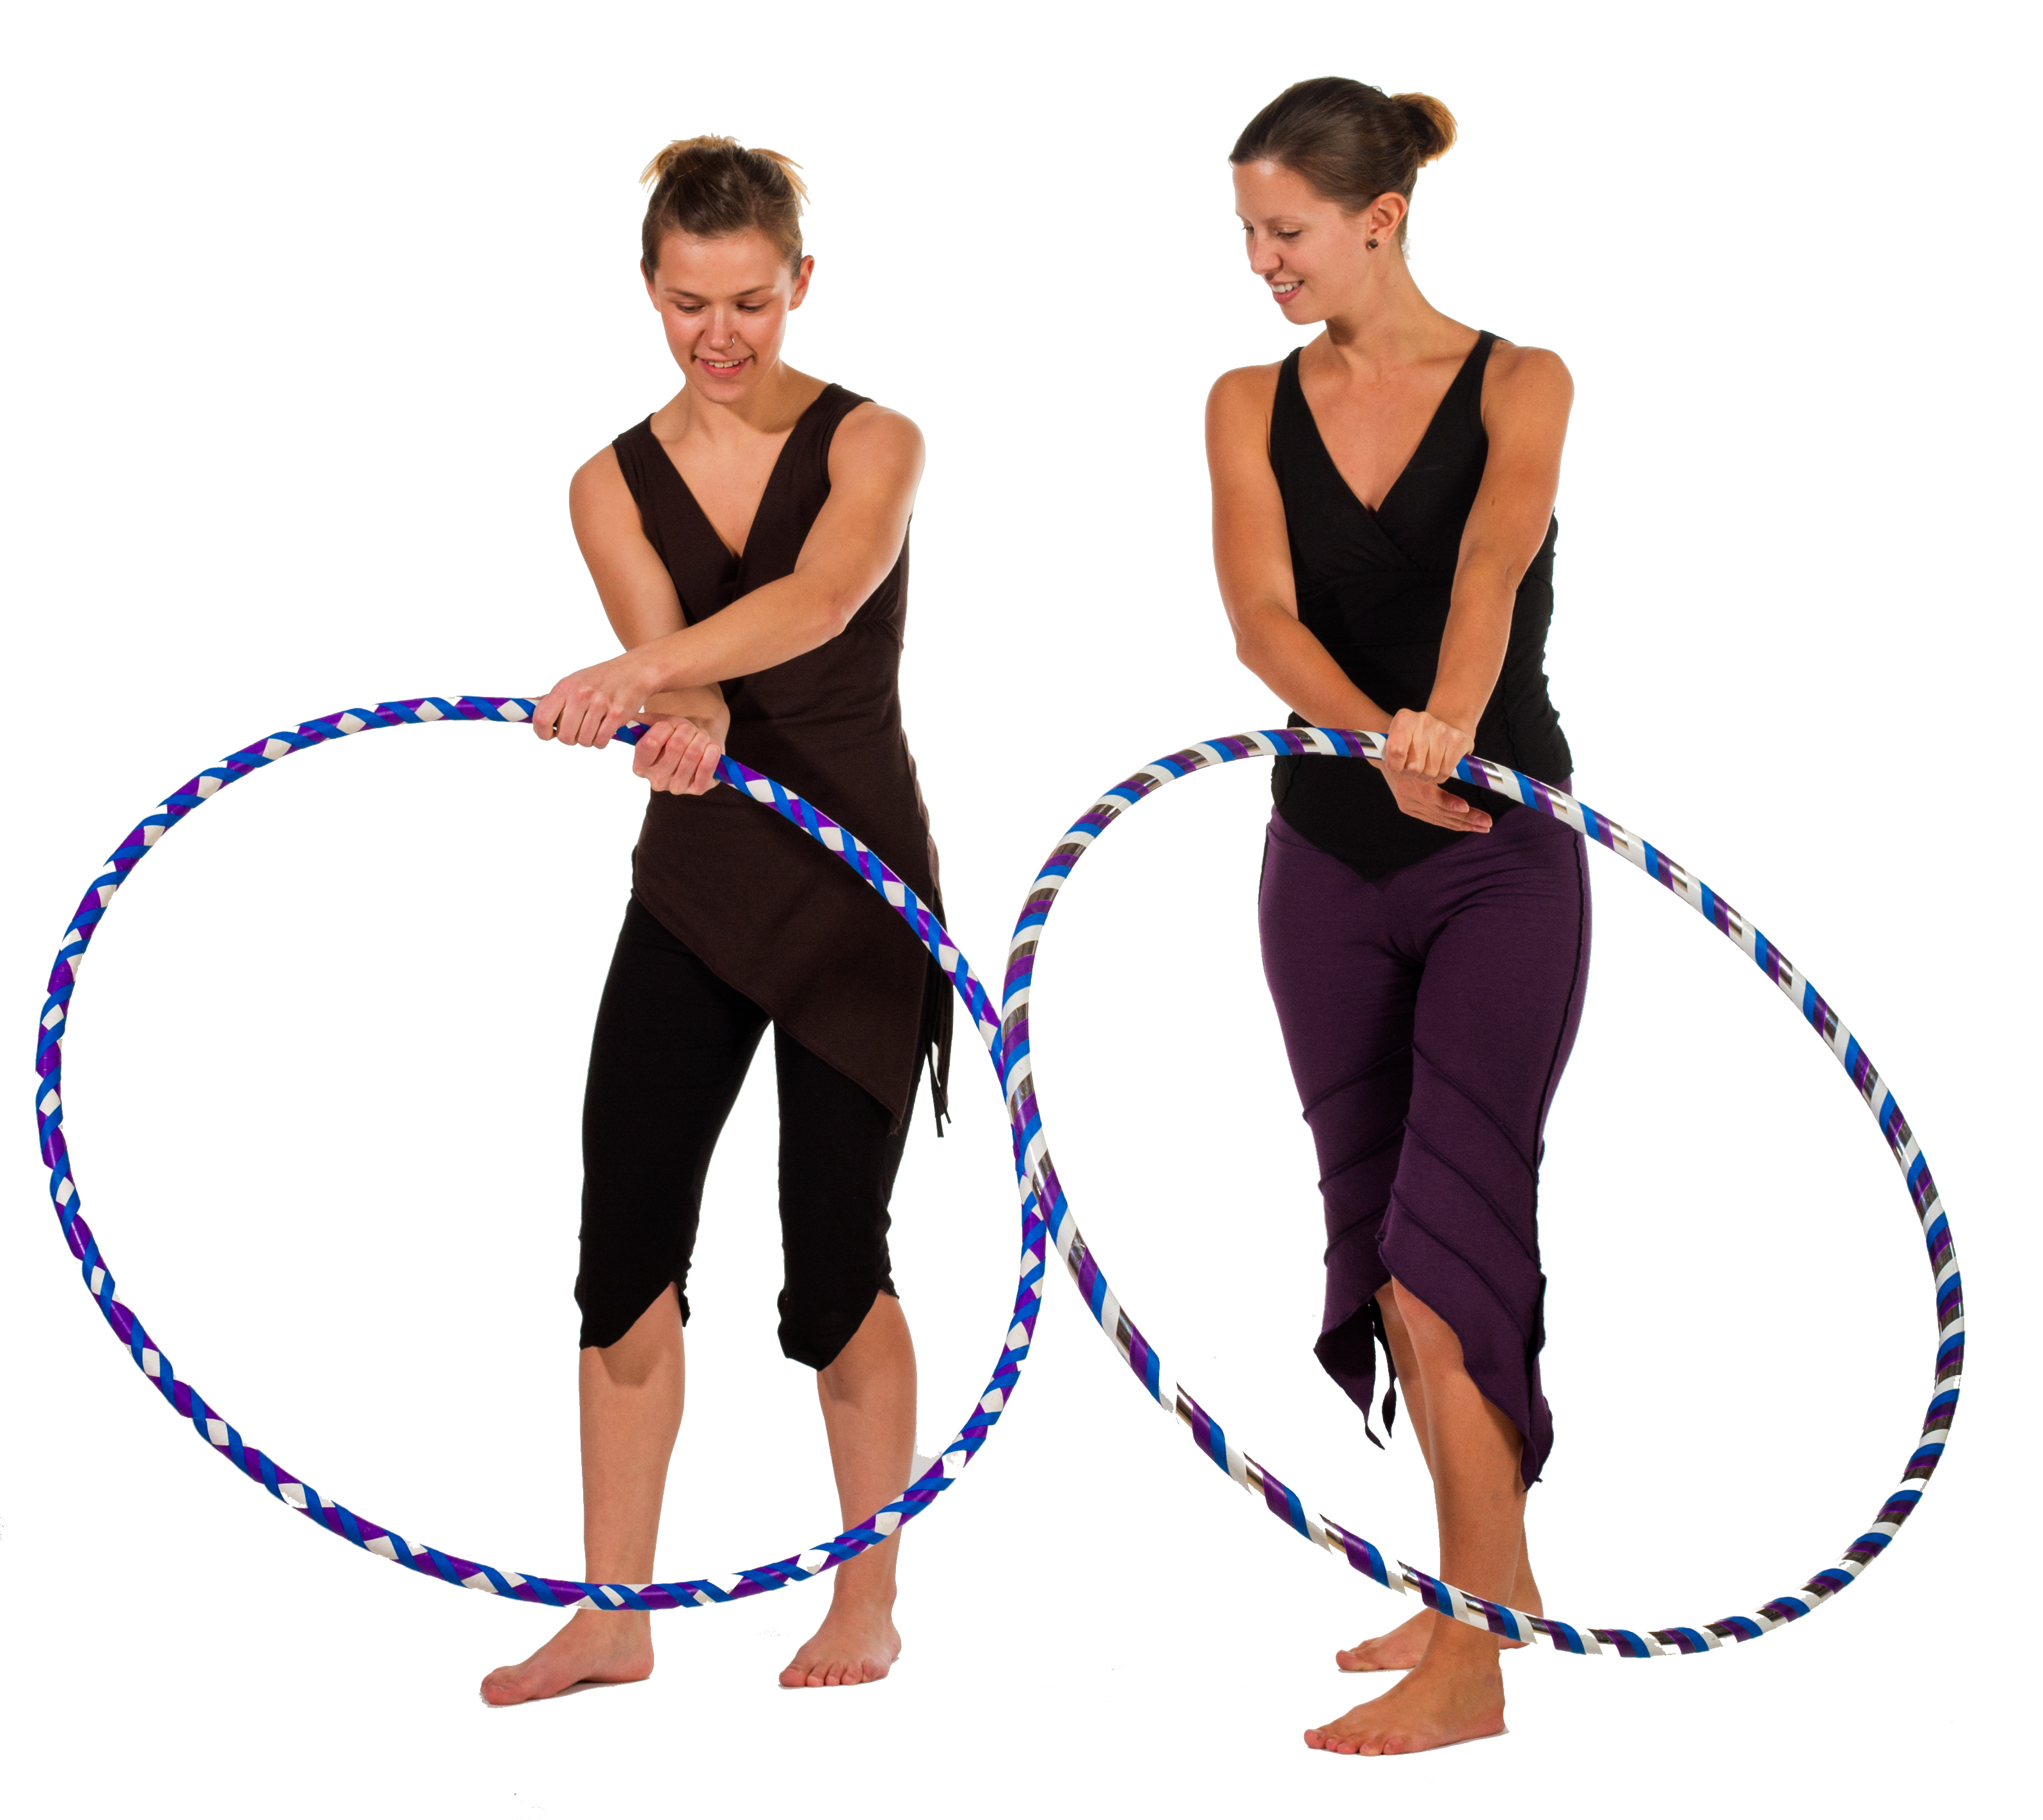 Learning Hooping with Safire